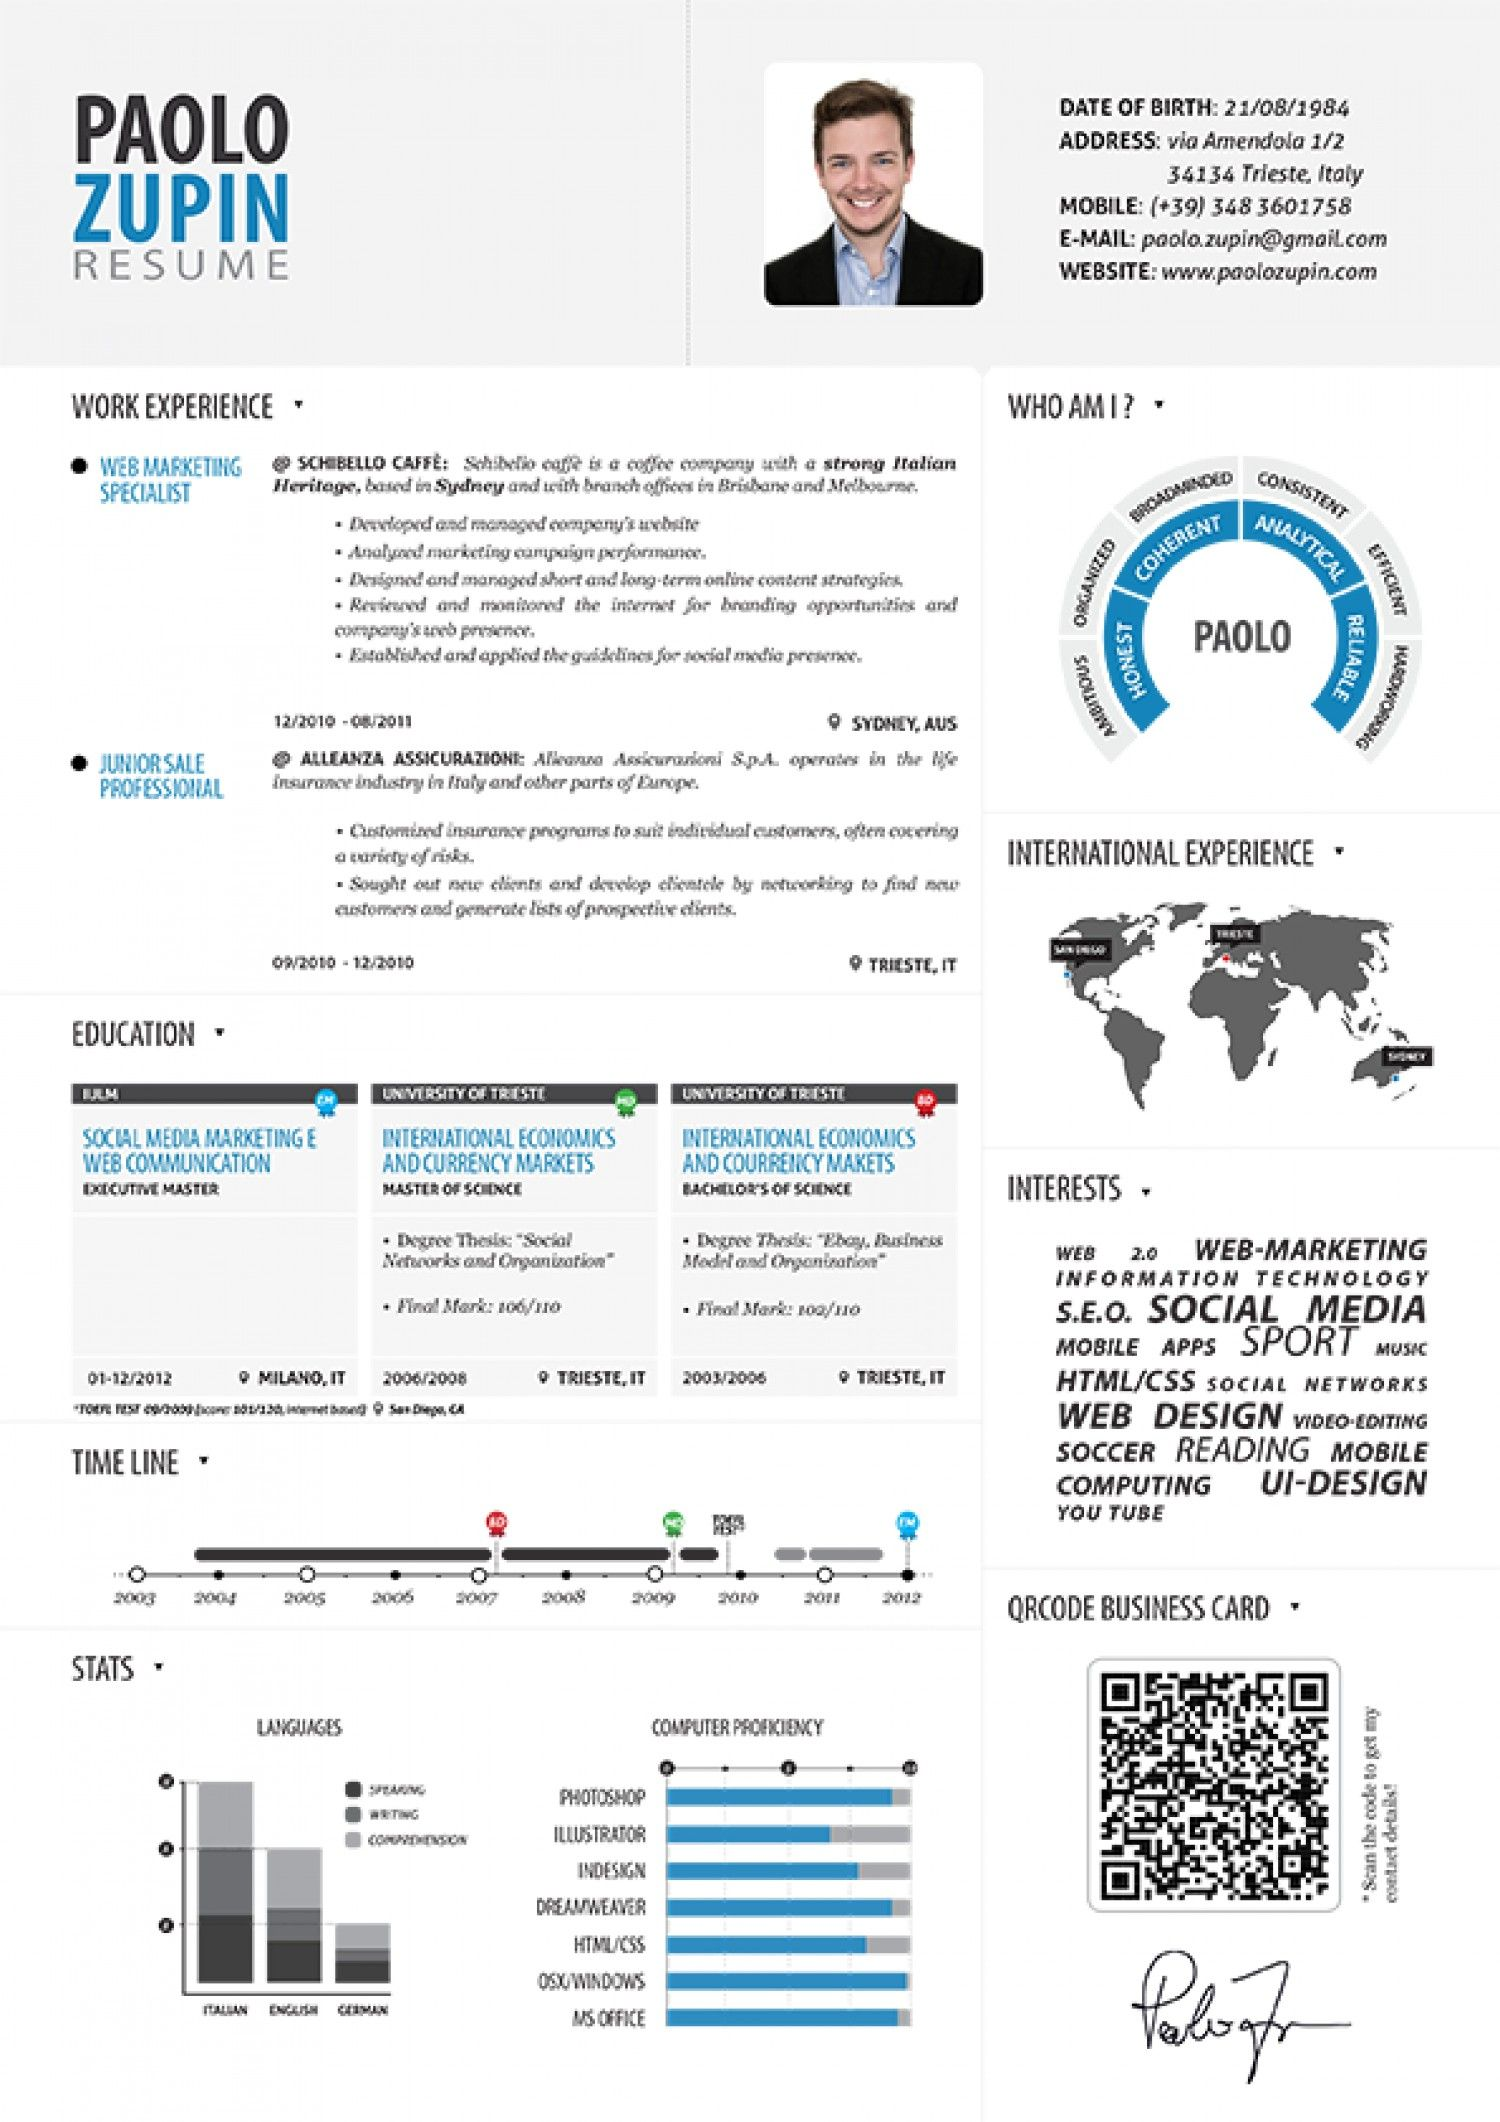 Opposenewapstandardsus  Mesmerizing Infographic Resume Resume And Infographic On Pinterest With Gorgeous Architecture Resume Examples Besides Mortgage Loan Officer Resume Furthermore Pharmacist Resume Example With Comely Making A Resume In Word Also Sample Registered Nurse Resume In Addition Additional Skills To Put On A Resume And Printable Resume Examples As Well As Nursing Resume Objectives Additionally How To Make Your First Resume From Pinterestcom With Opposenewapstandardsus  Gorgeous Infographic Resume Resume And Infographic On Pinterest With Comely Architecture Resume Examples Besides Mortgage Loan Officer Resume Furthermore Pharmacist Resume Example And Mesmerizing Making A Resume In Word Also Sample Registered Nurse Resume In Addition Additional Skills To Put On A Resume From Pinterestcom